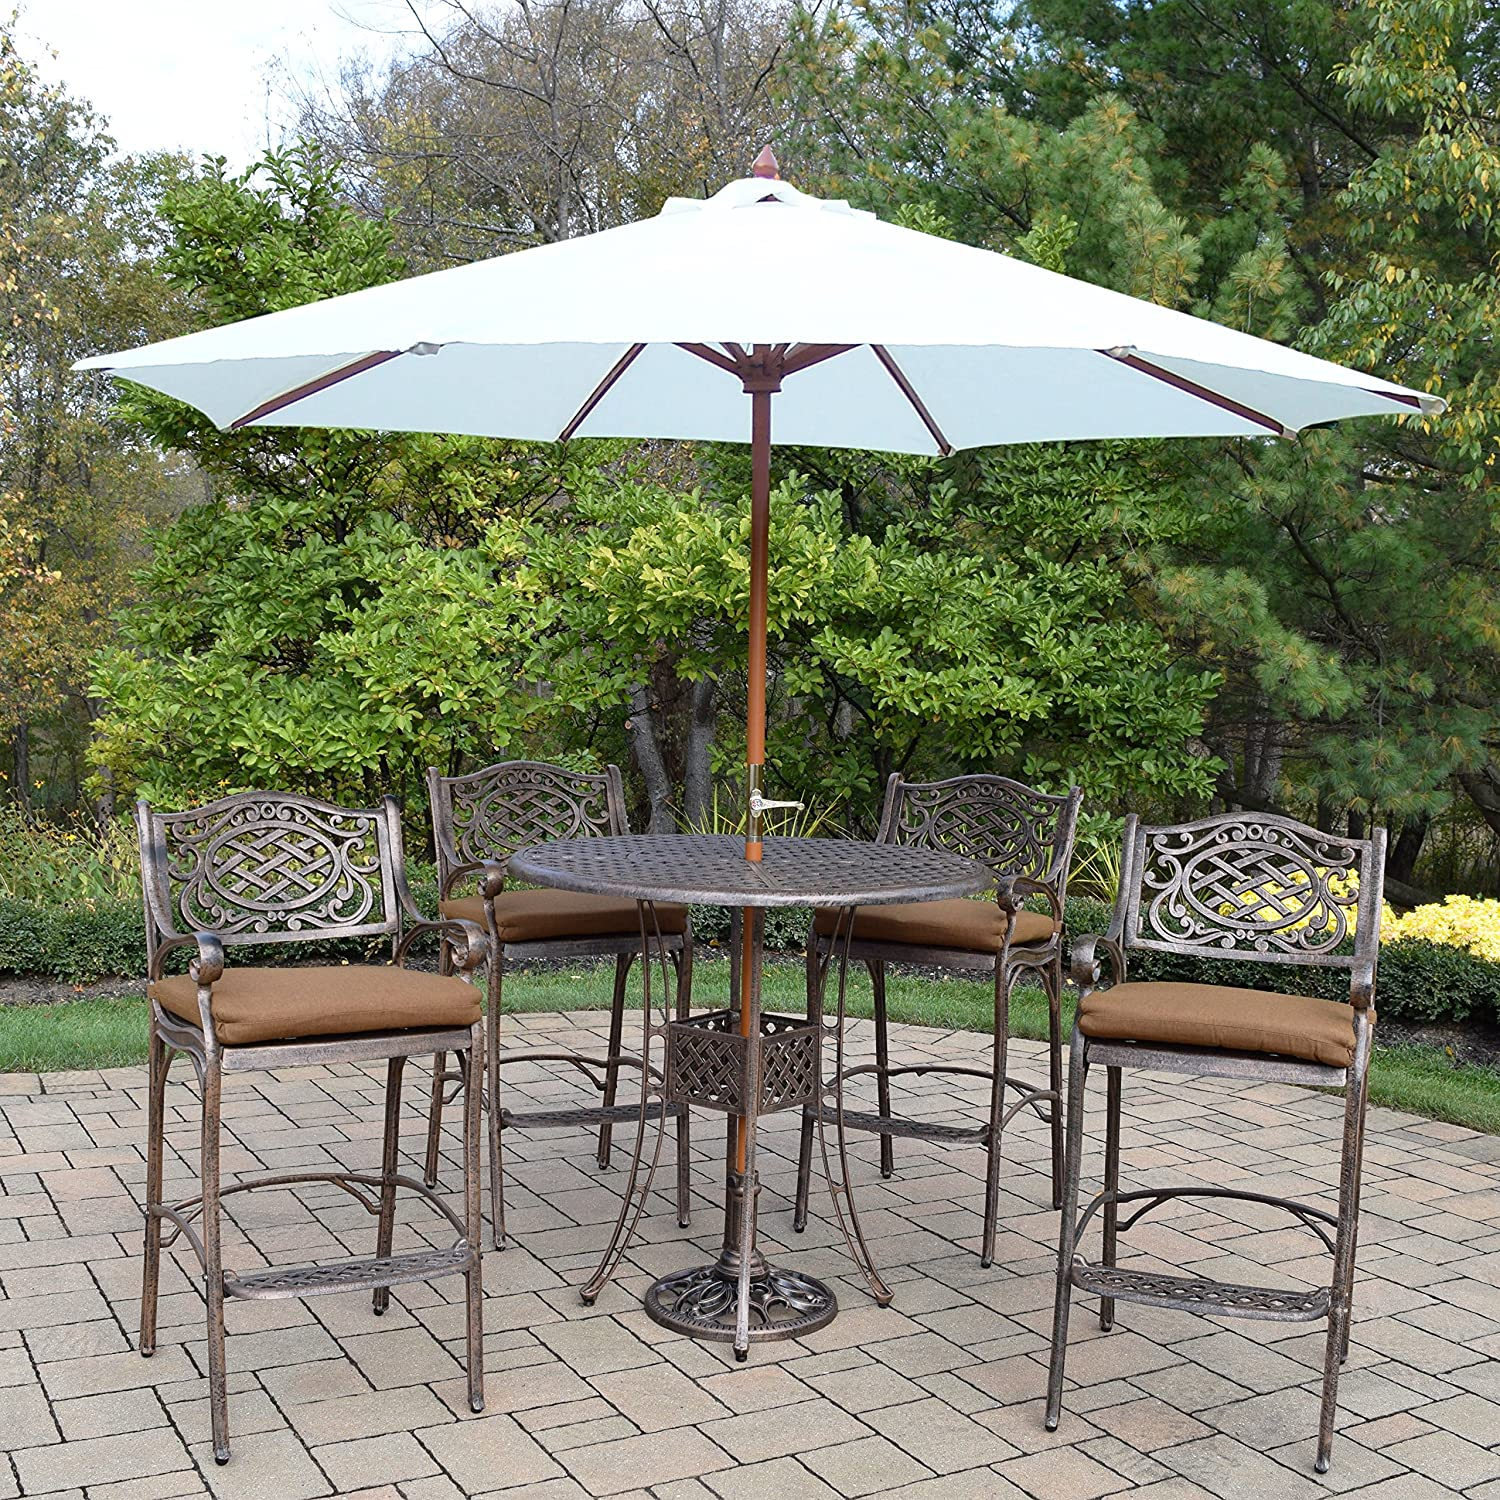 Amazon Com Oakland Living Ice Cooler Carts Az1101bt 2110bc4 D54 4001wt 4101ab 11 Ab Elite Mississippi Bar Set With Table Sunbrella Cushioned Bar Stools Crank Wooden Umbrella And Stand Antique Bronze Garden Outdoor